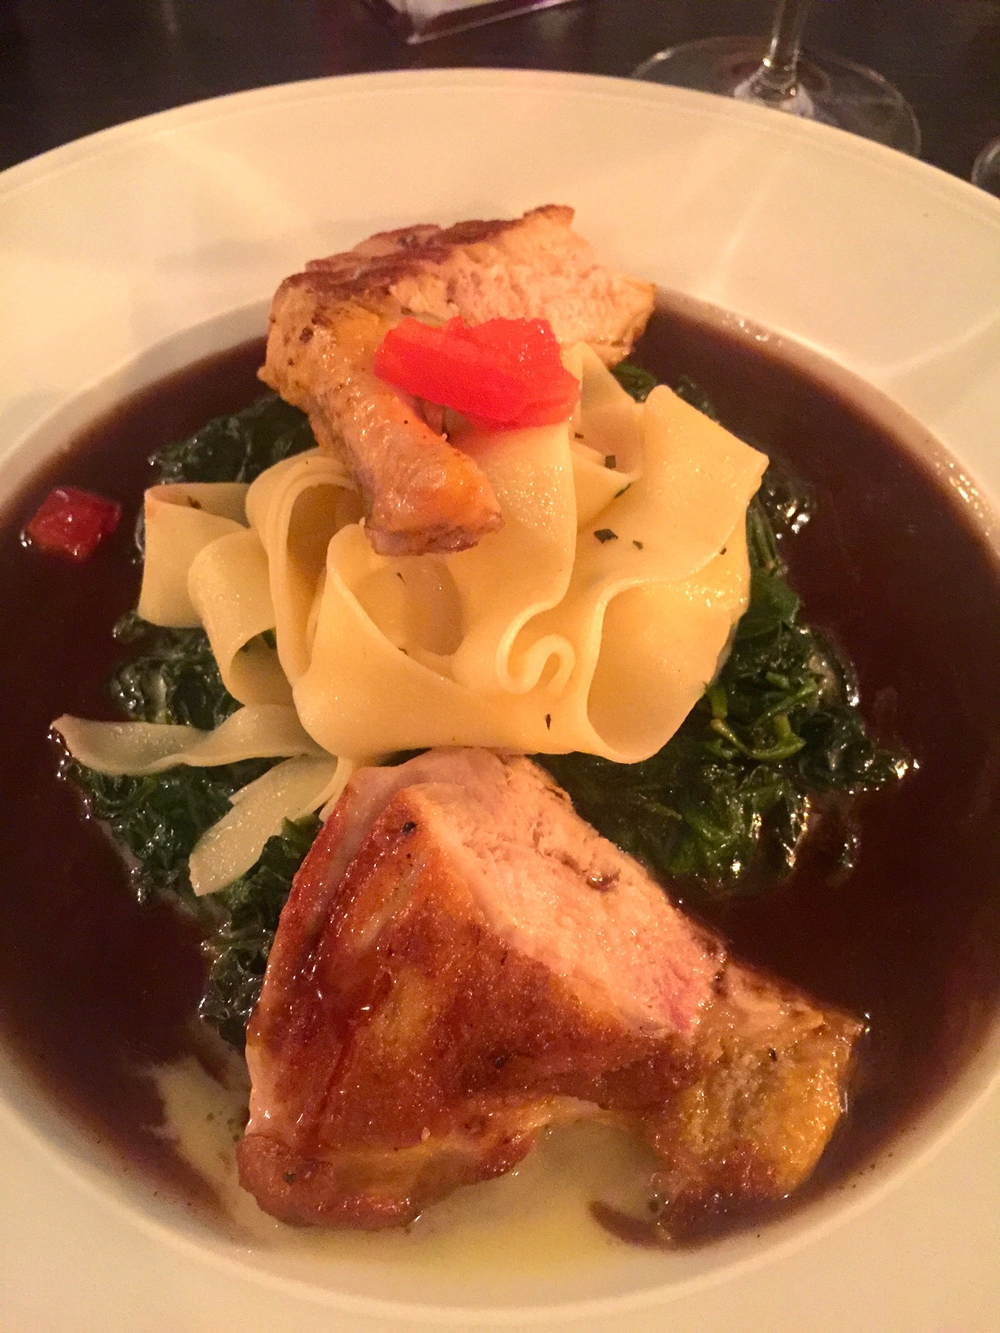 My Cornish hen with truffled spinach and pappardelle in a Port wine sauce